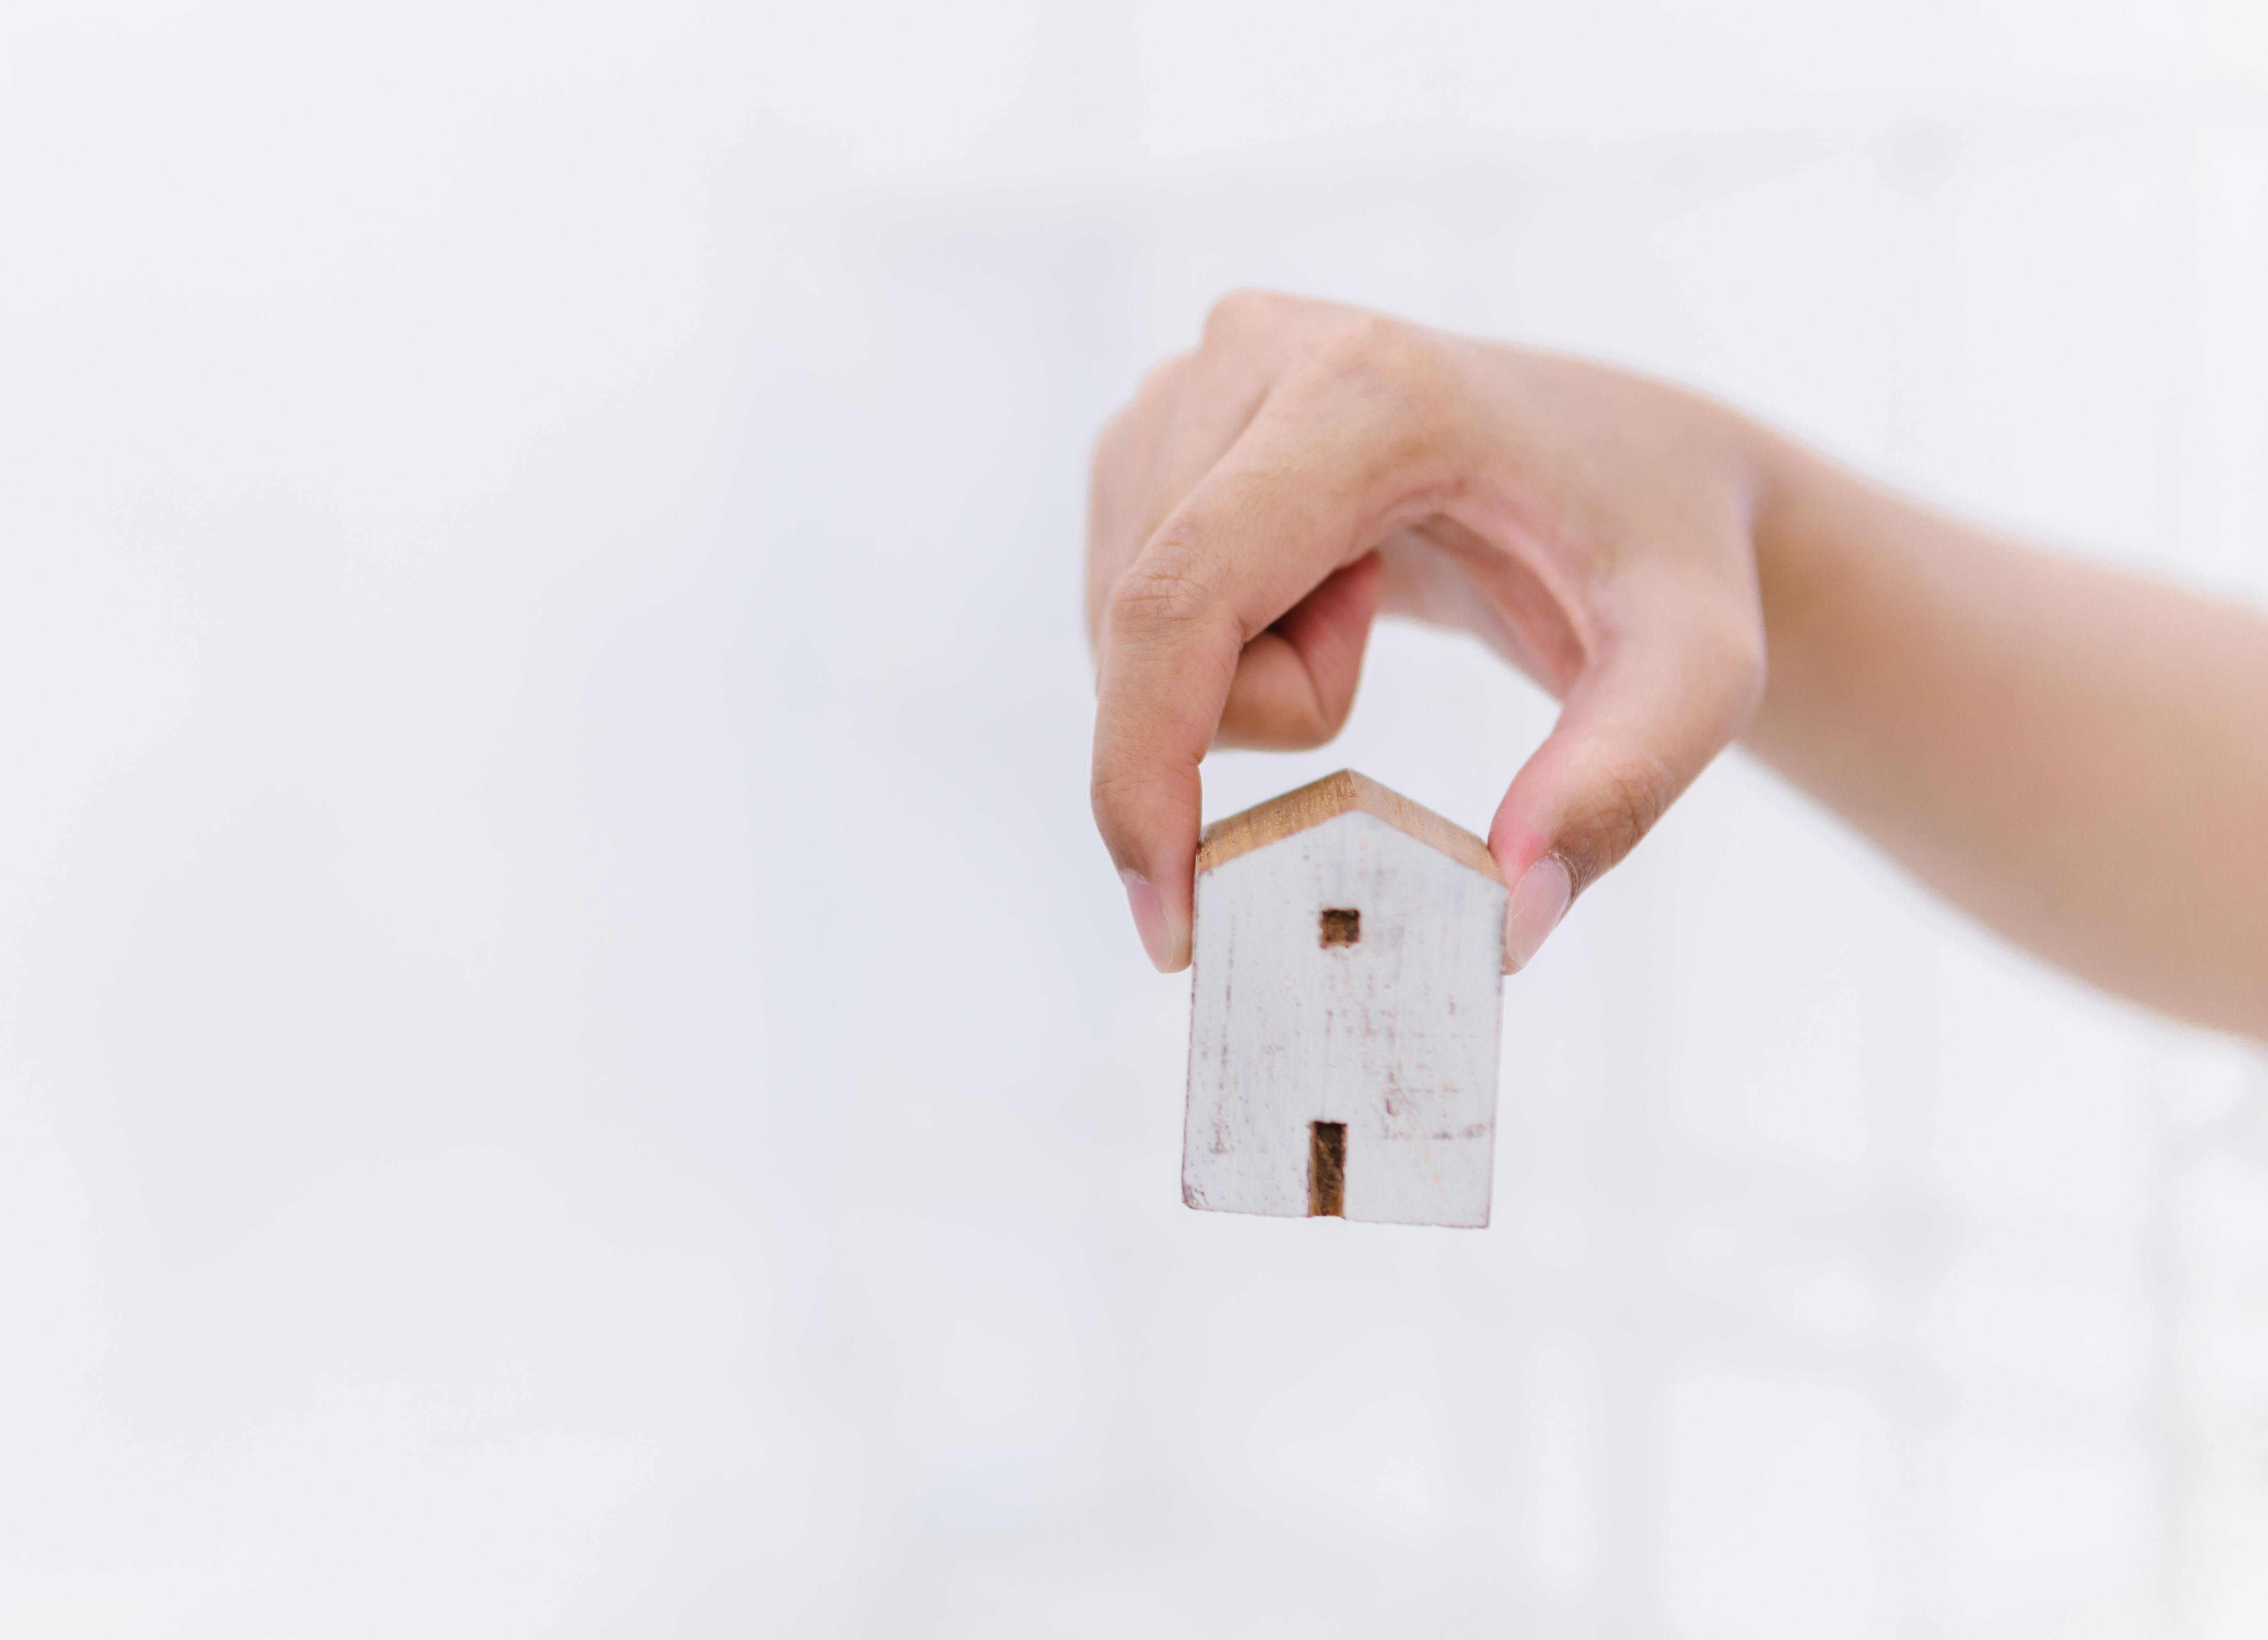 Re/Max 2019 Housing Market Outlook